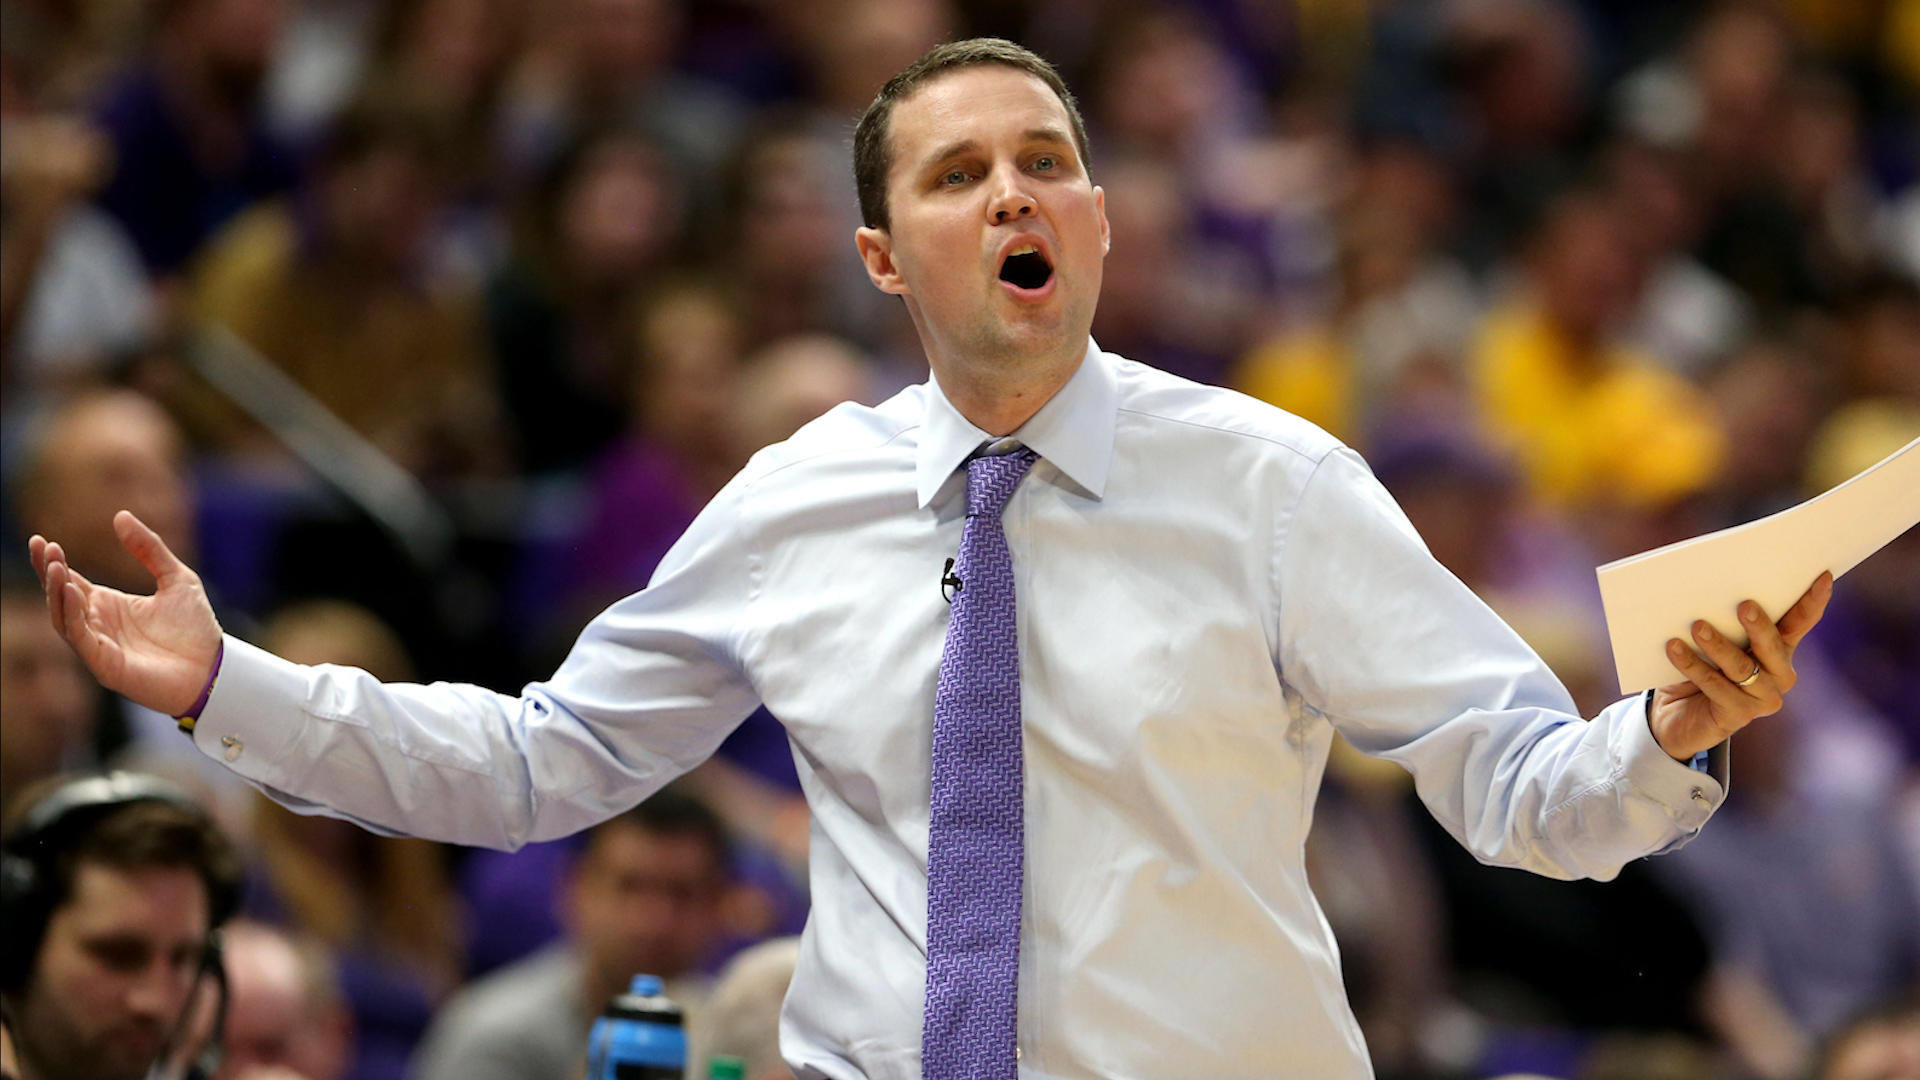 College basketball coaching changes: Texas A&M fires coach Billy Kennedy after eight seasons